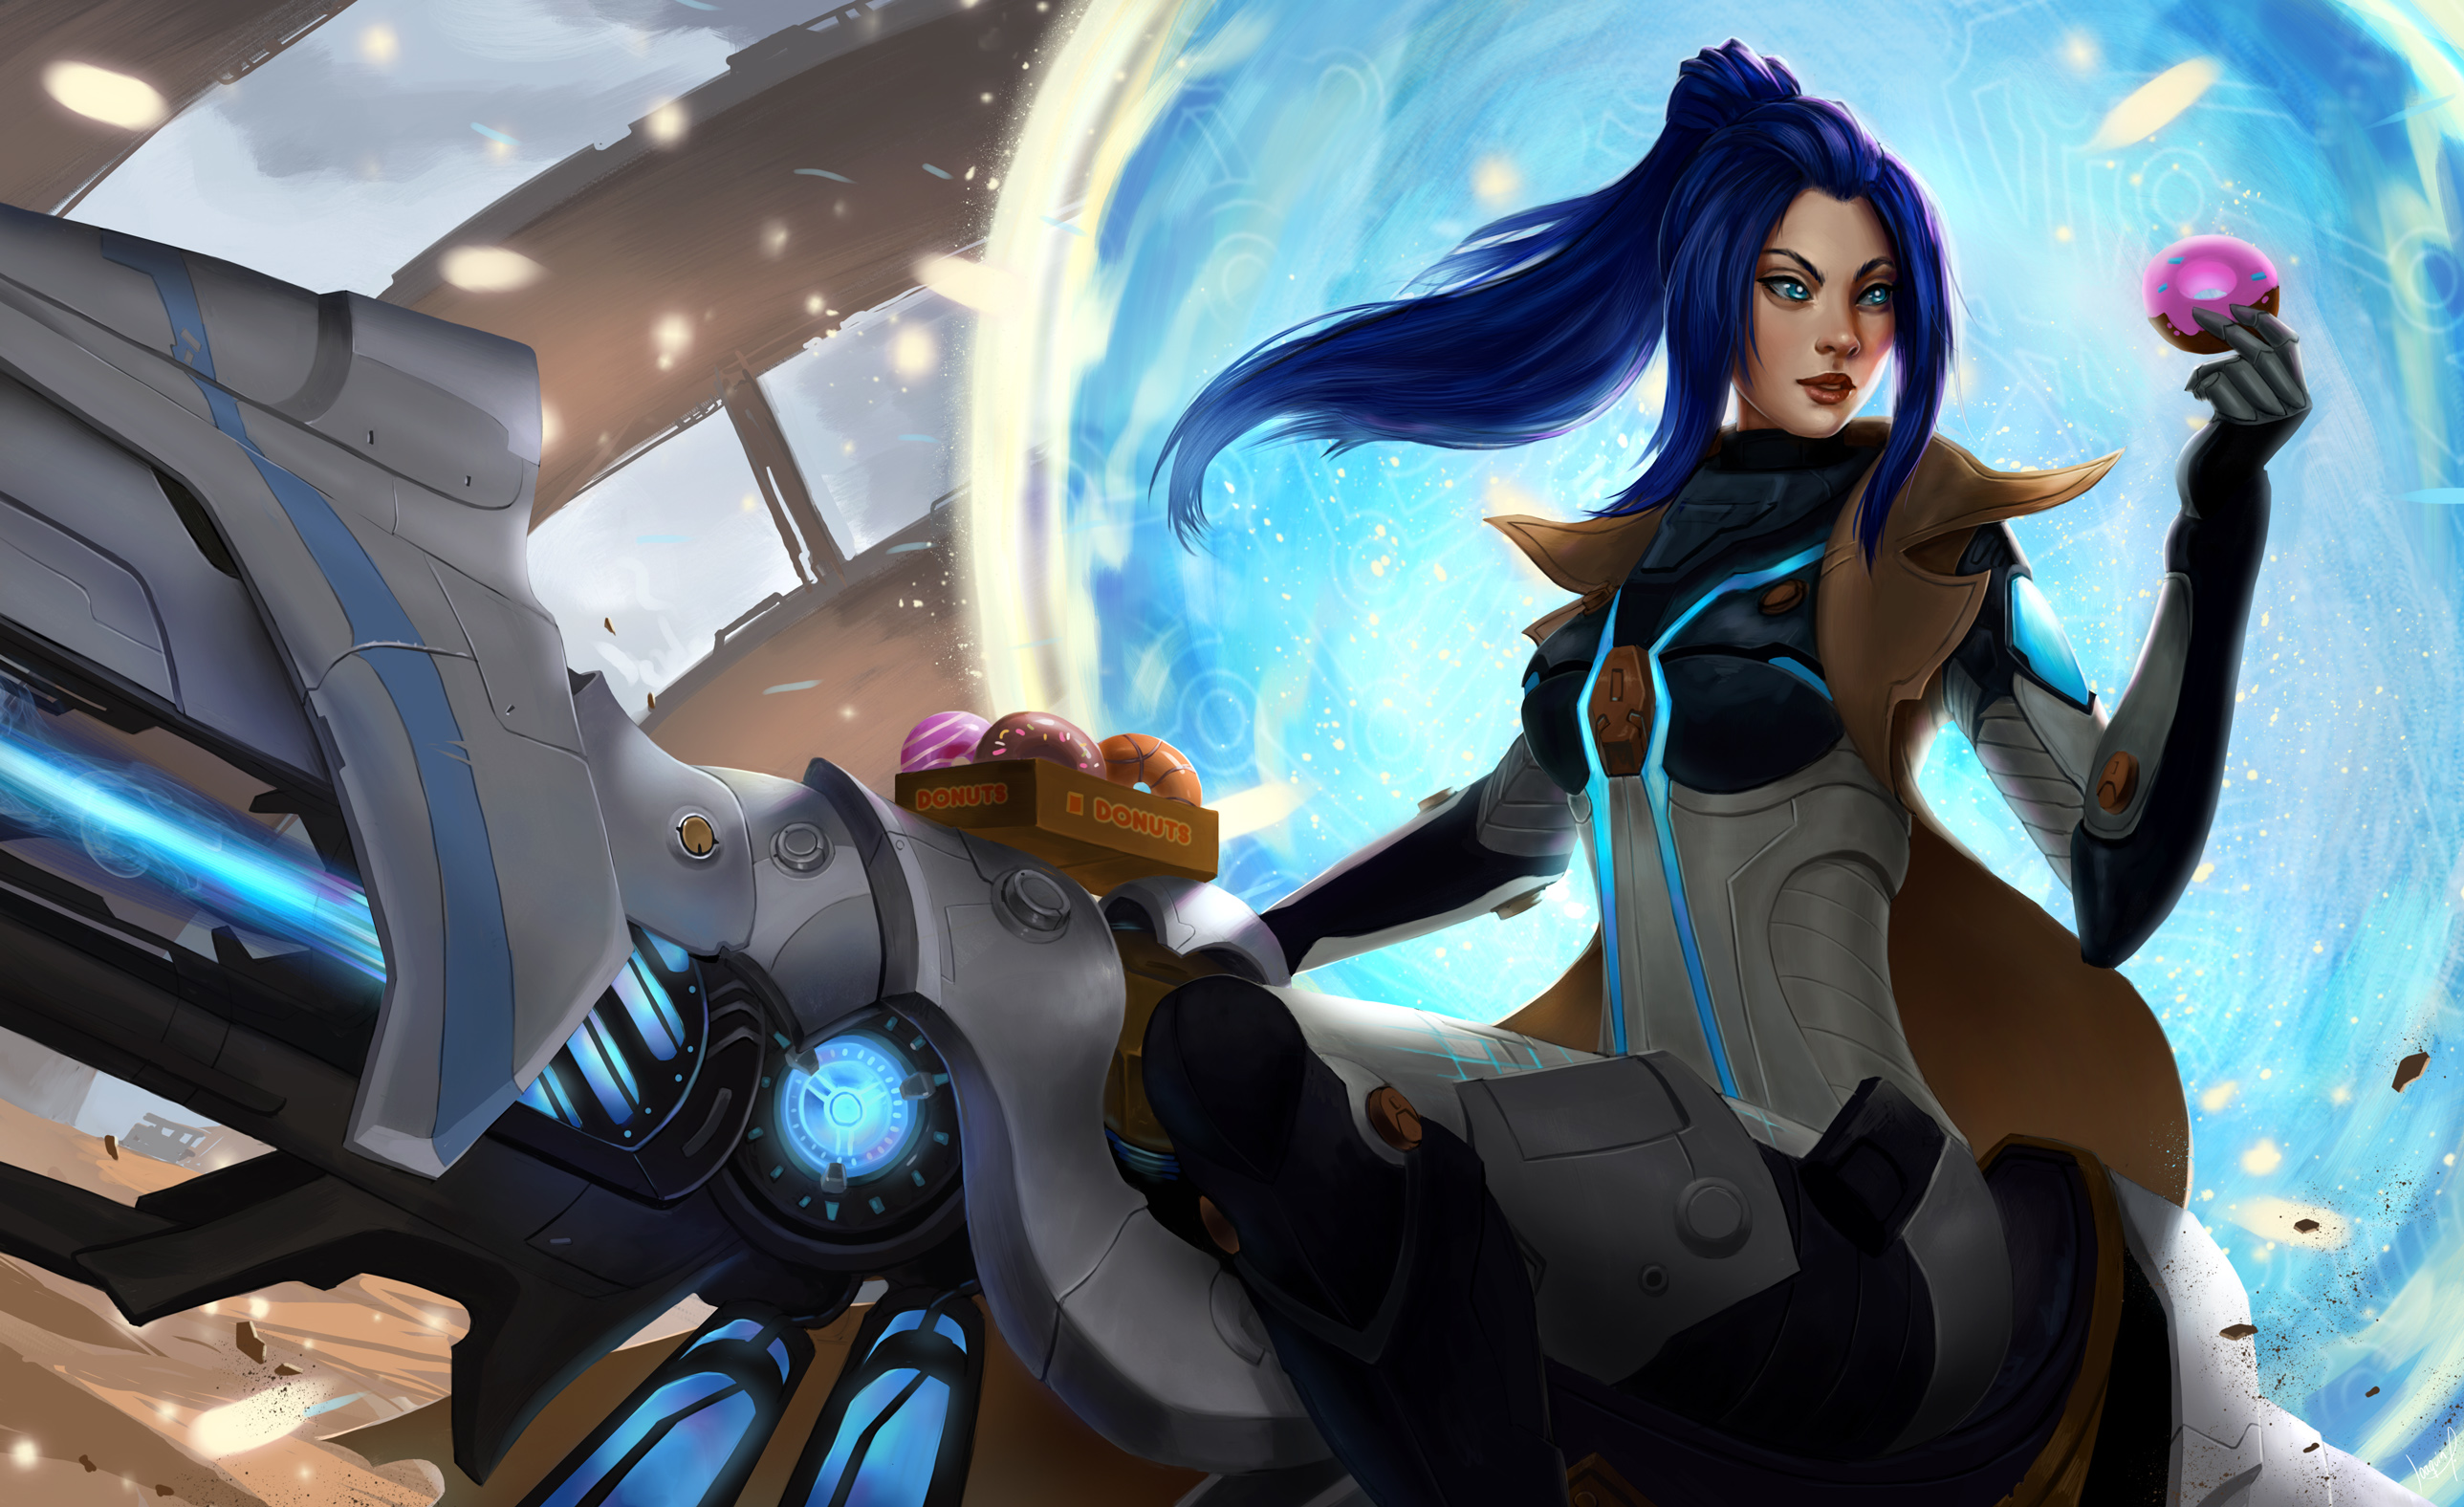 Free Download Pulsefire Caitlyn Lol Wallpapers 2577x1576 For